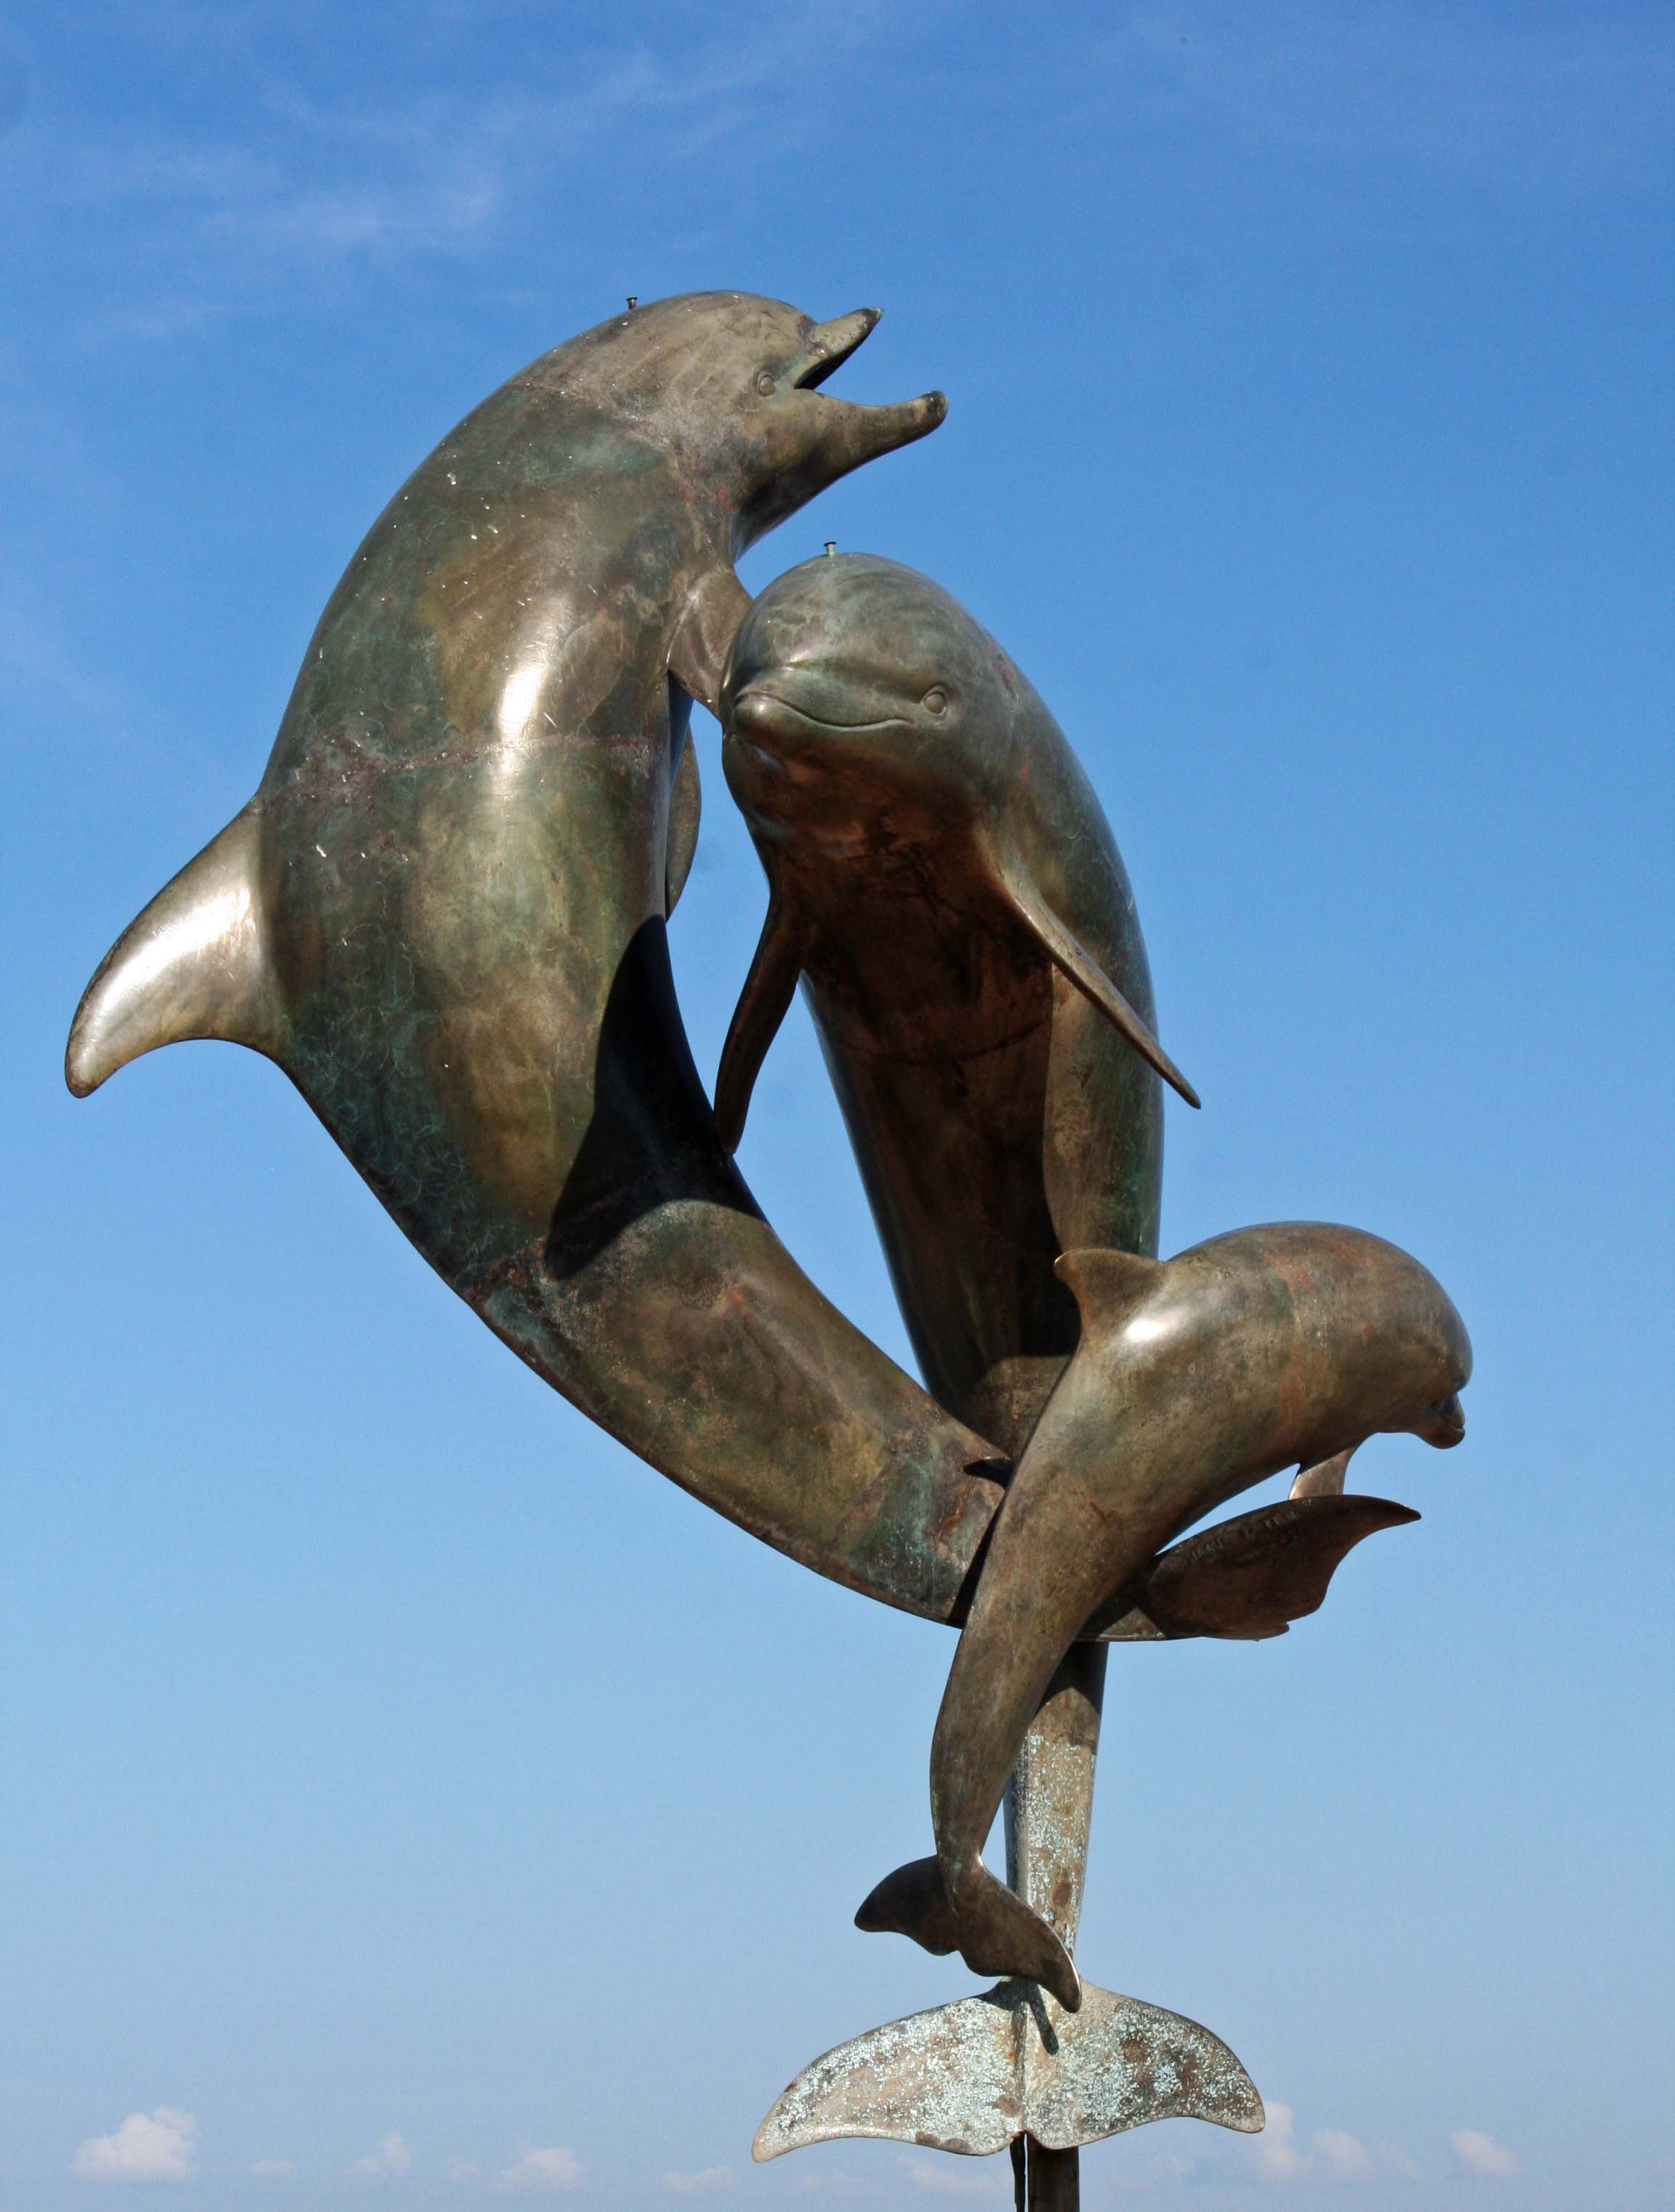 Dancing Dolphins sculpture in Puerto Vallarta, Mexico. Photo by Curtis Mekemson.